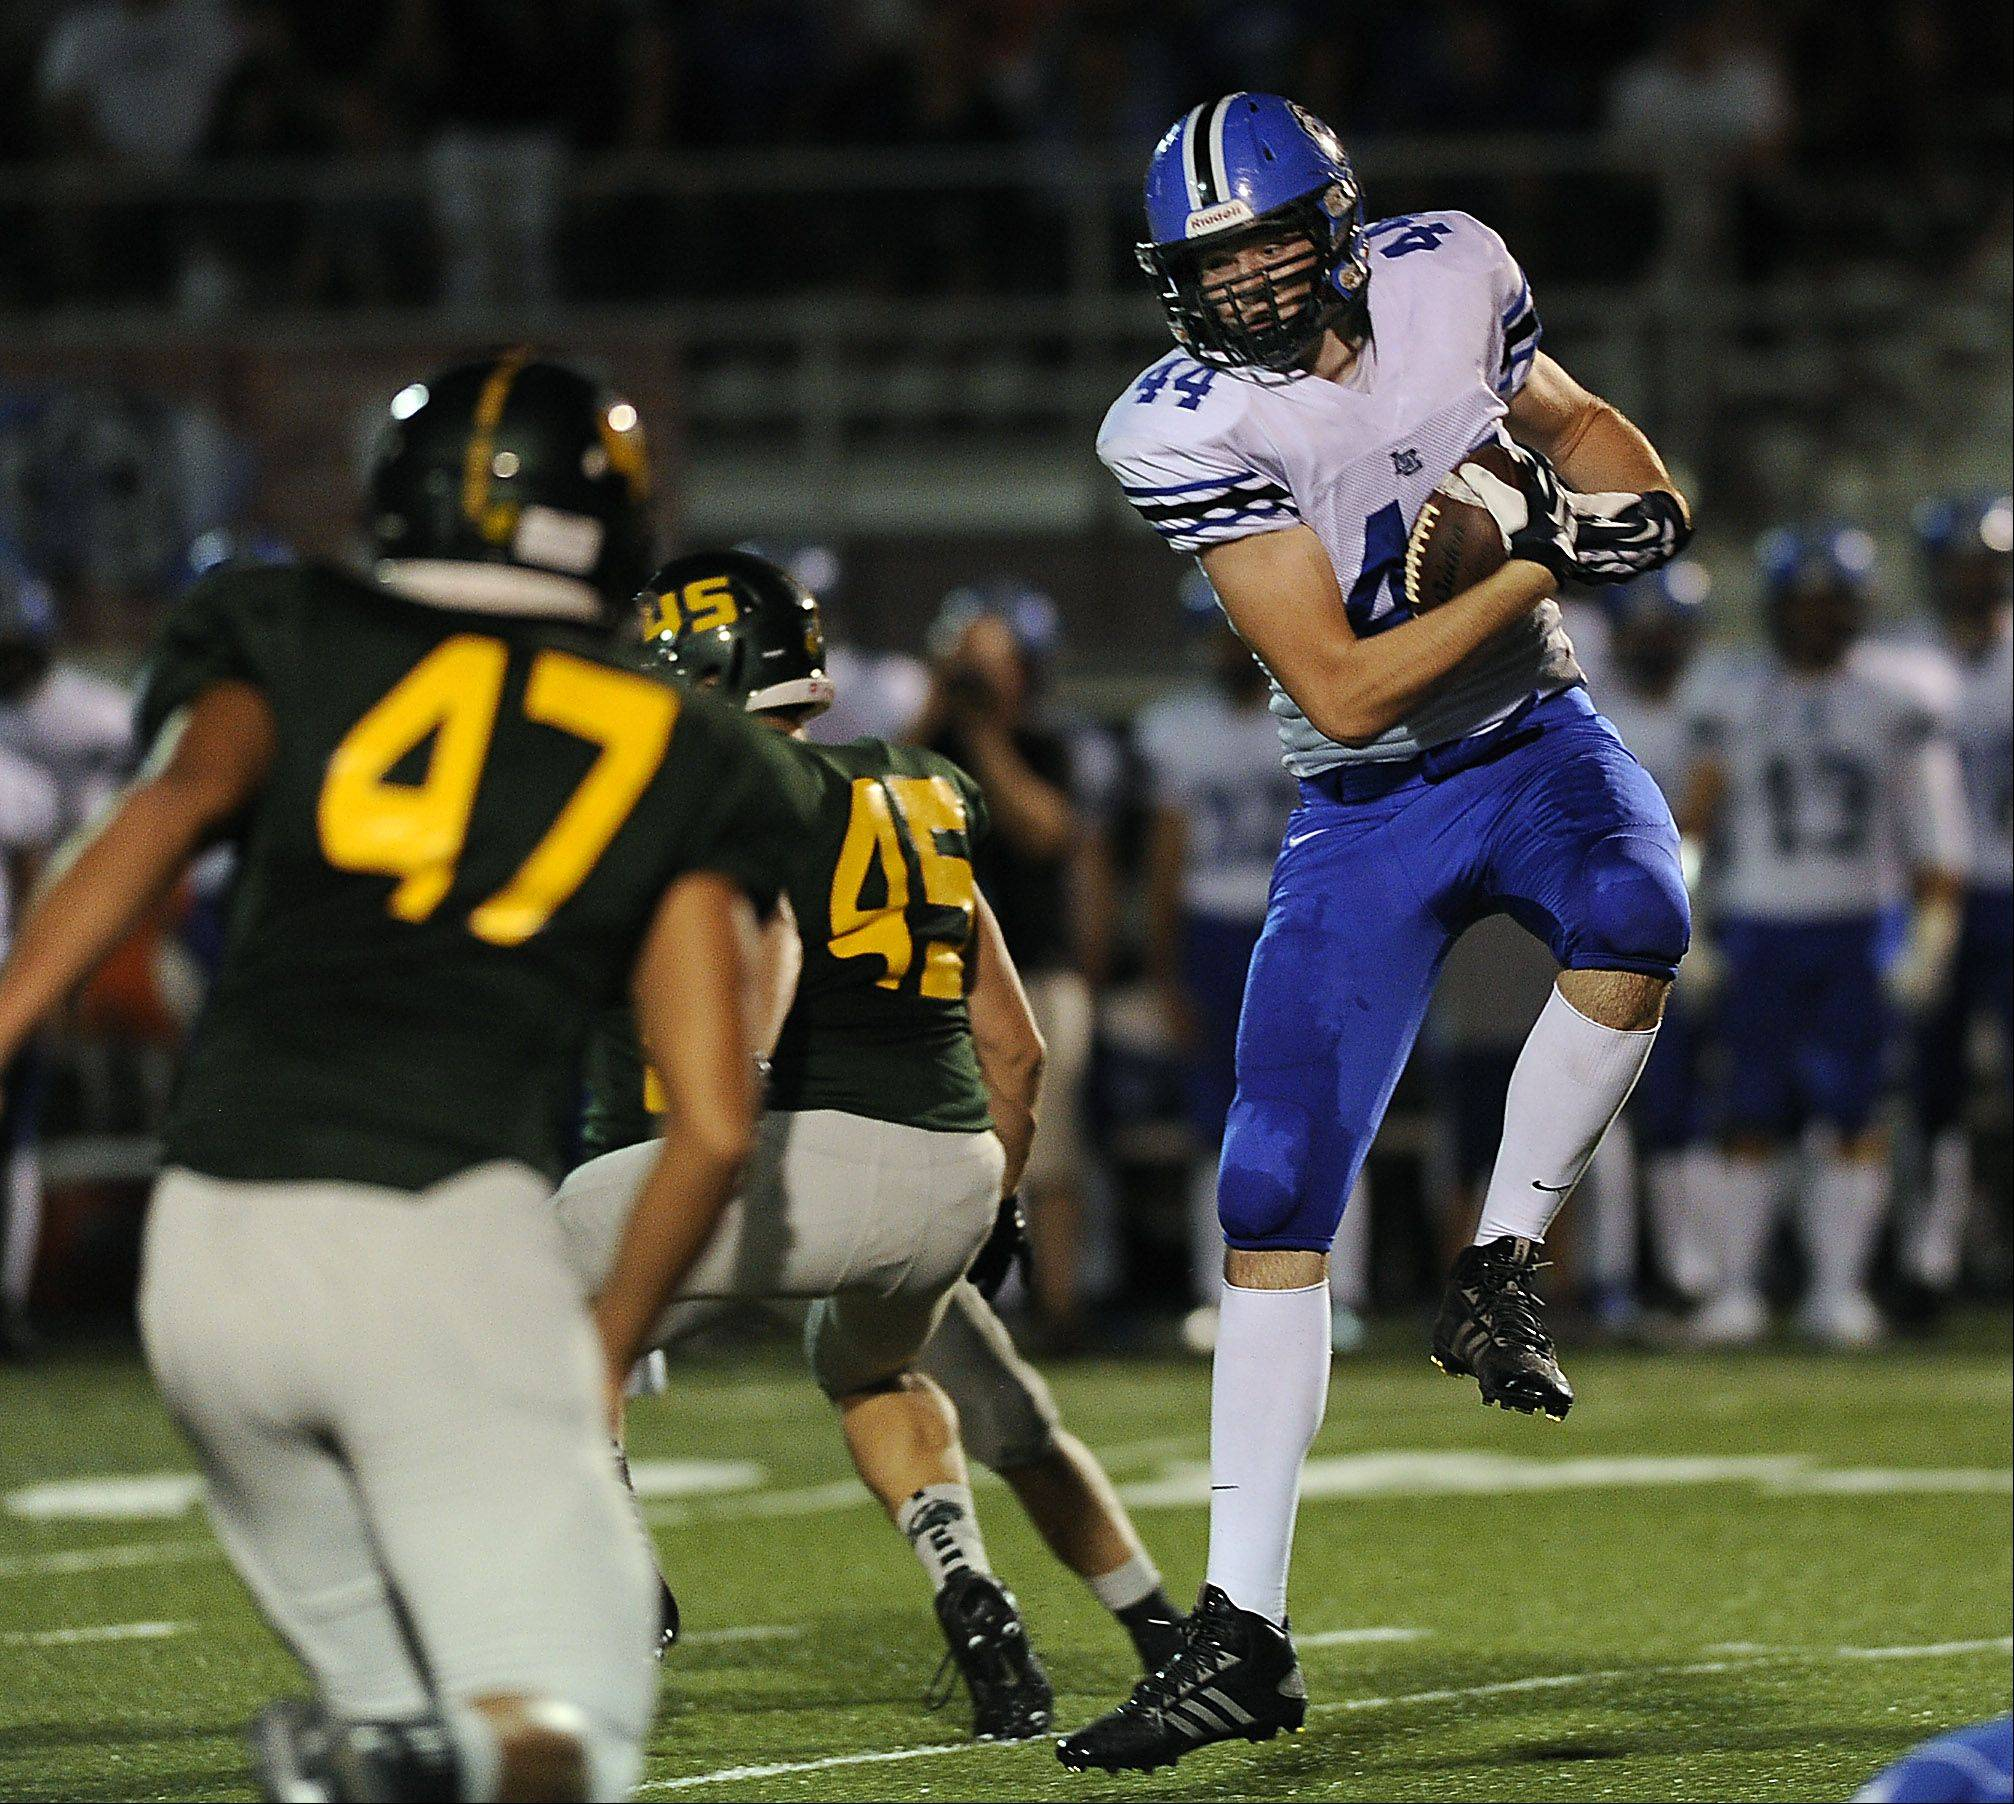 Lake Zurich's Zach Wallace hauls in a first-quarter pass play.